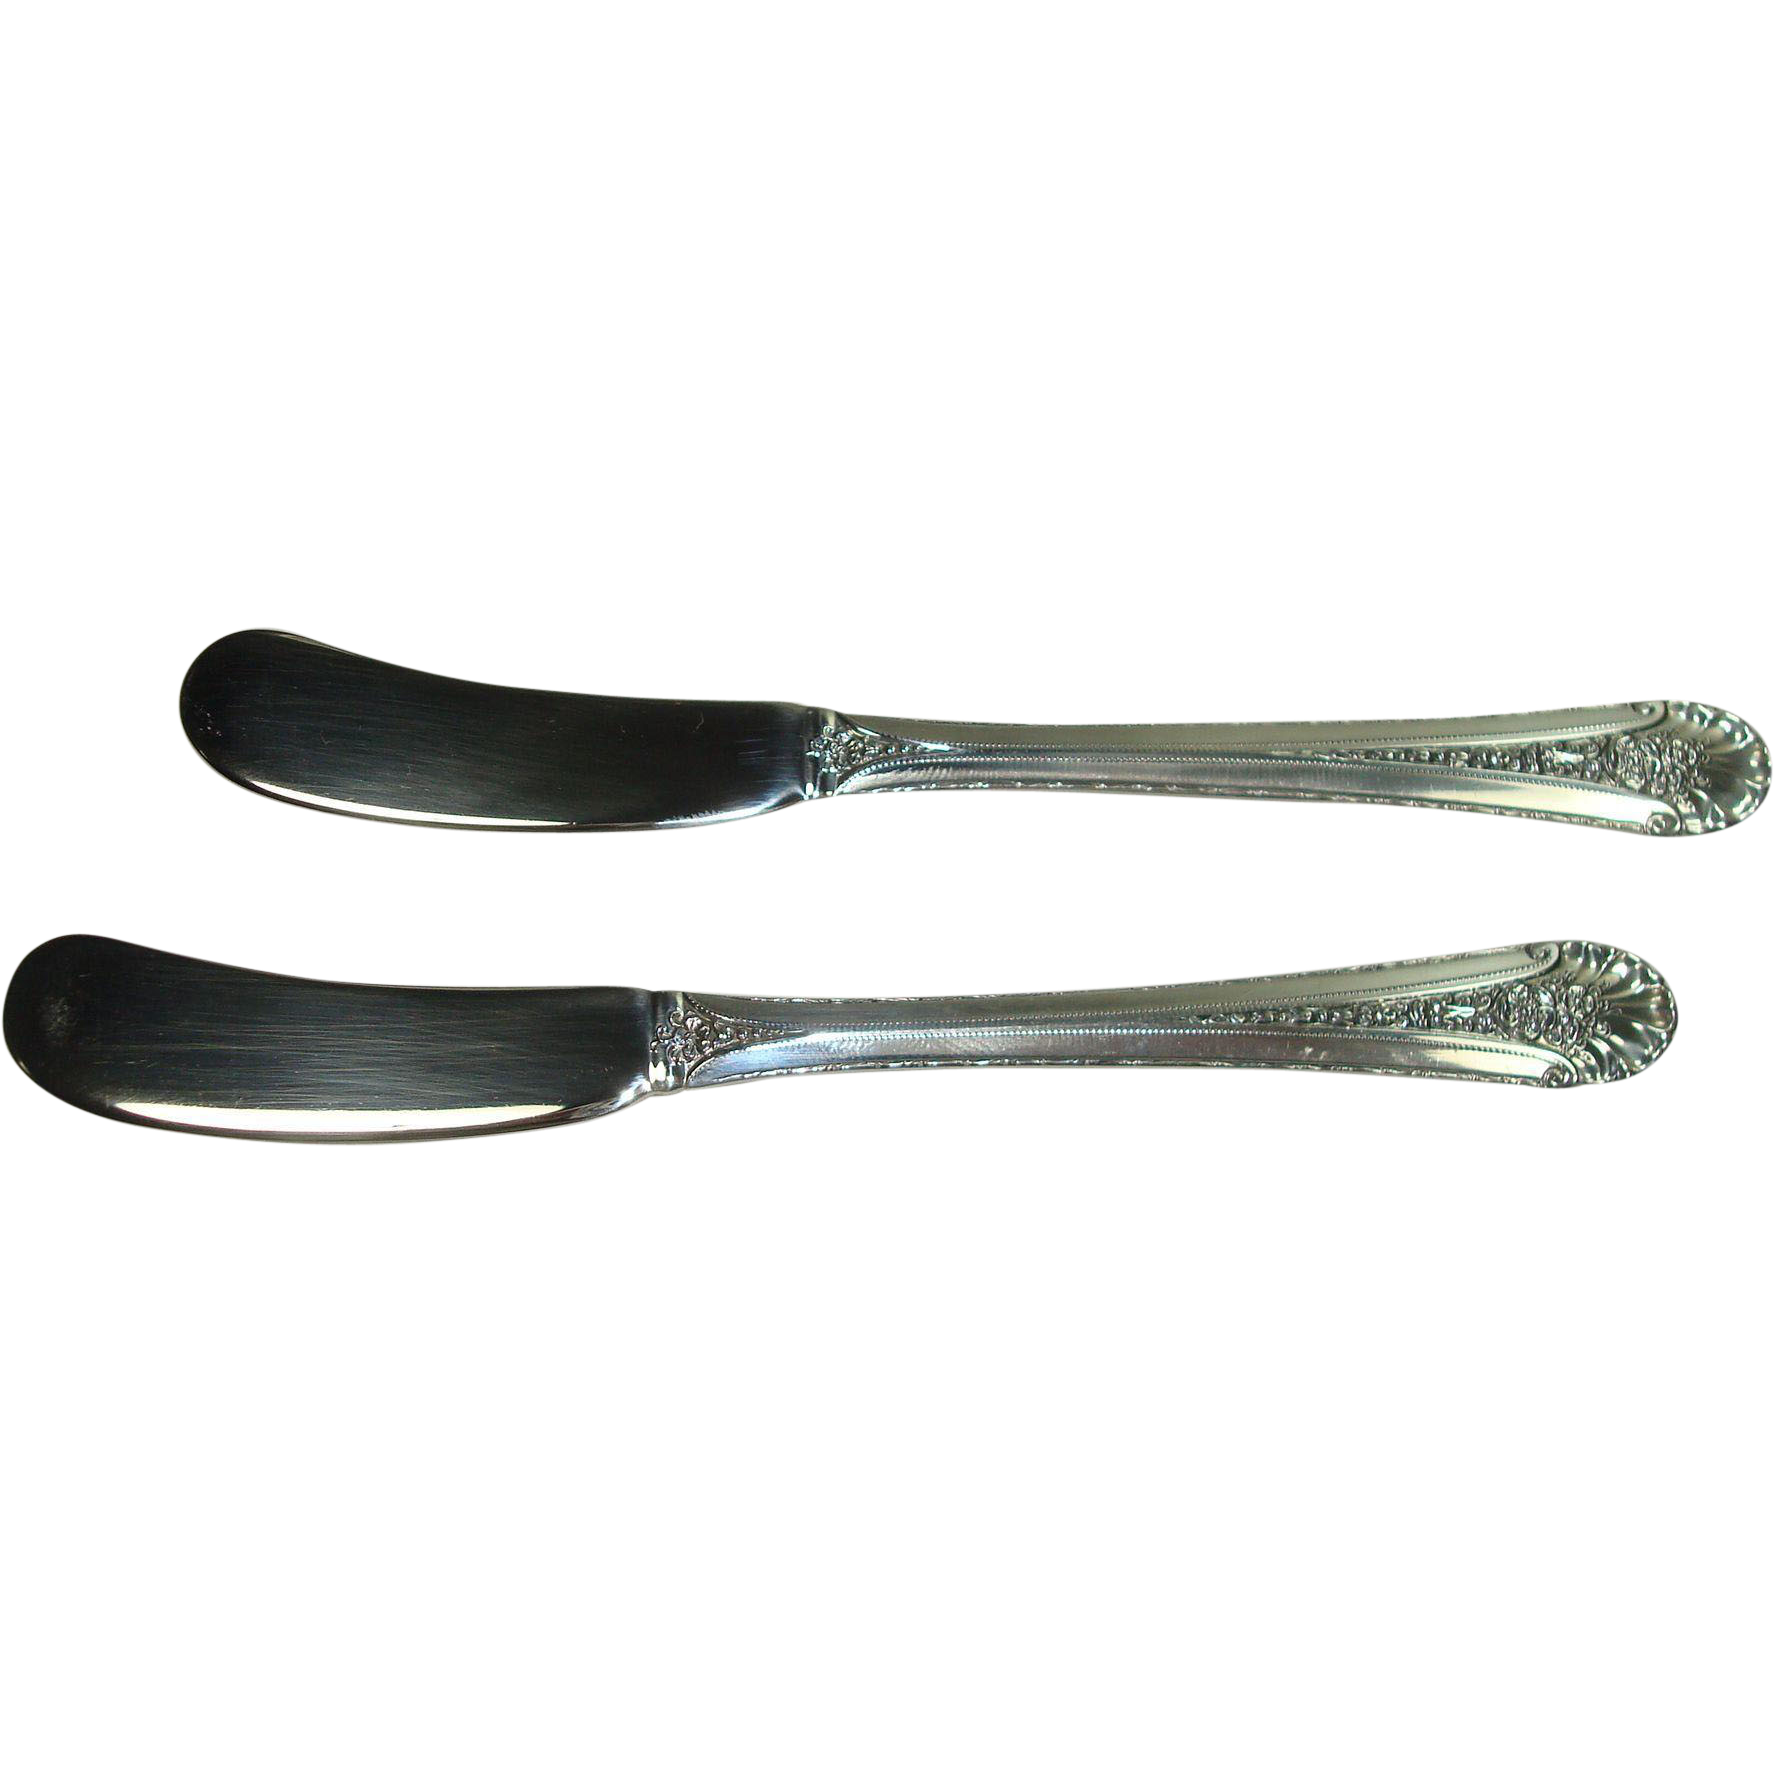 Towle 1935 Royal Windsor Flat Handled Butter Spreaders